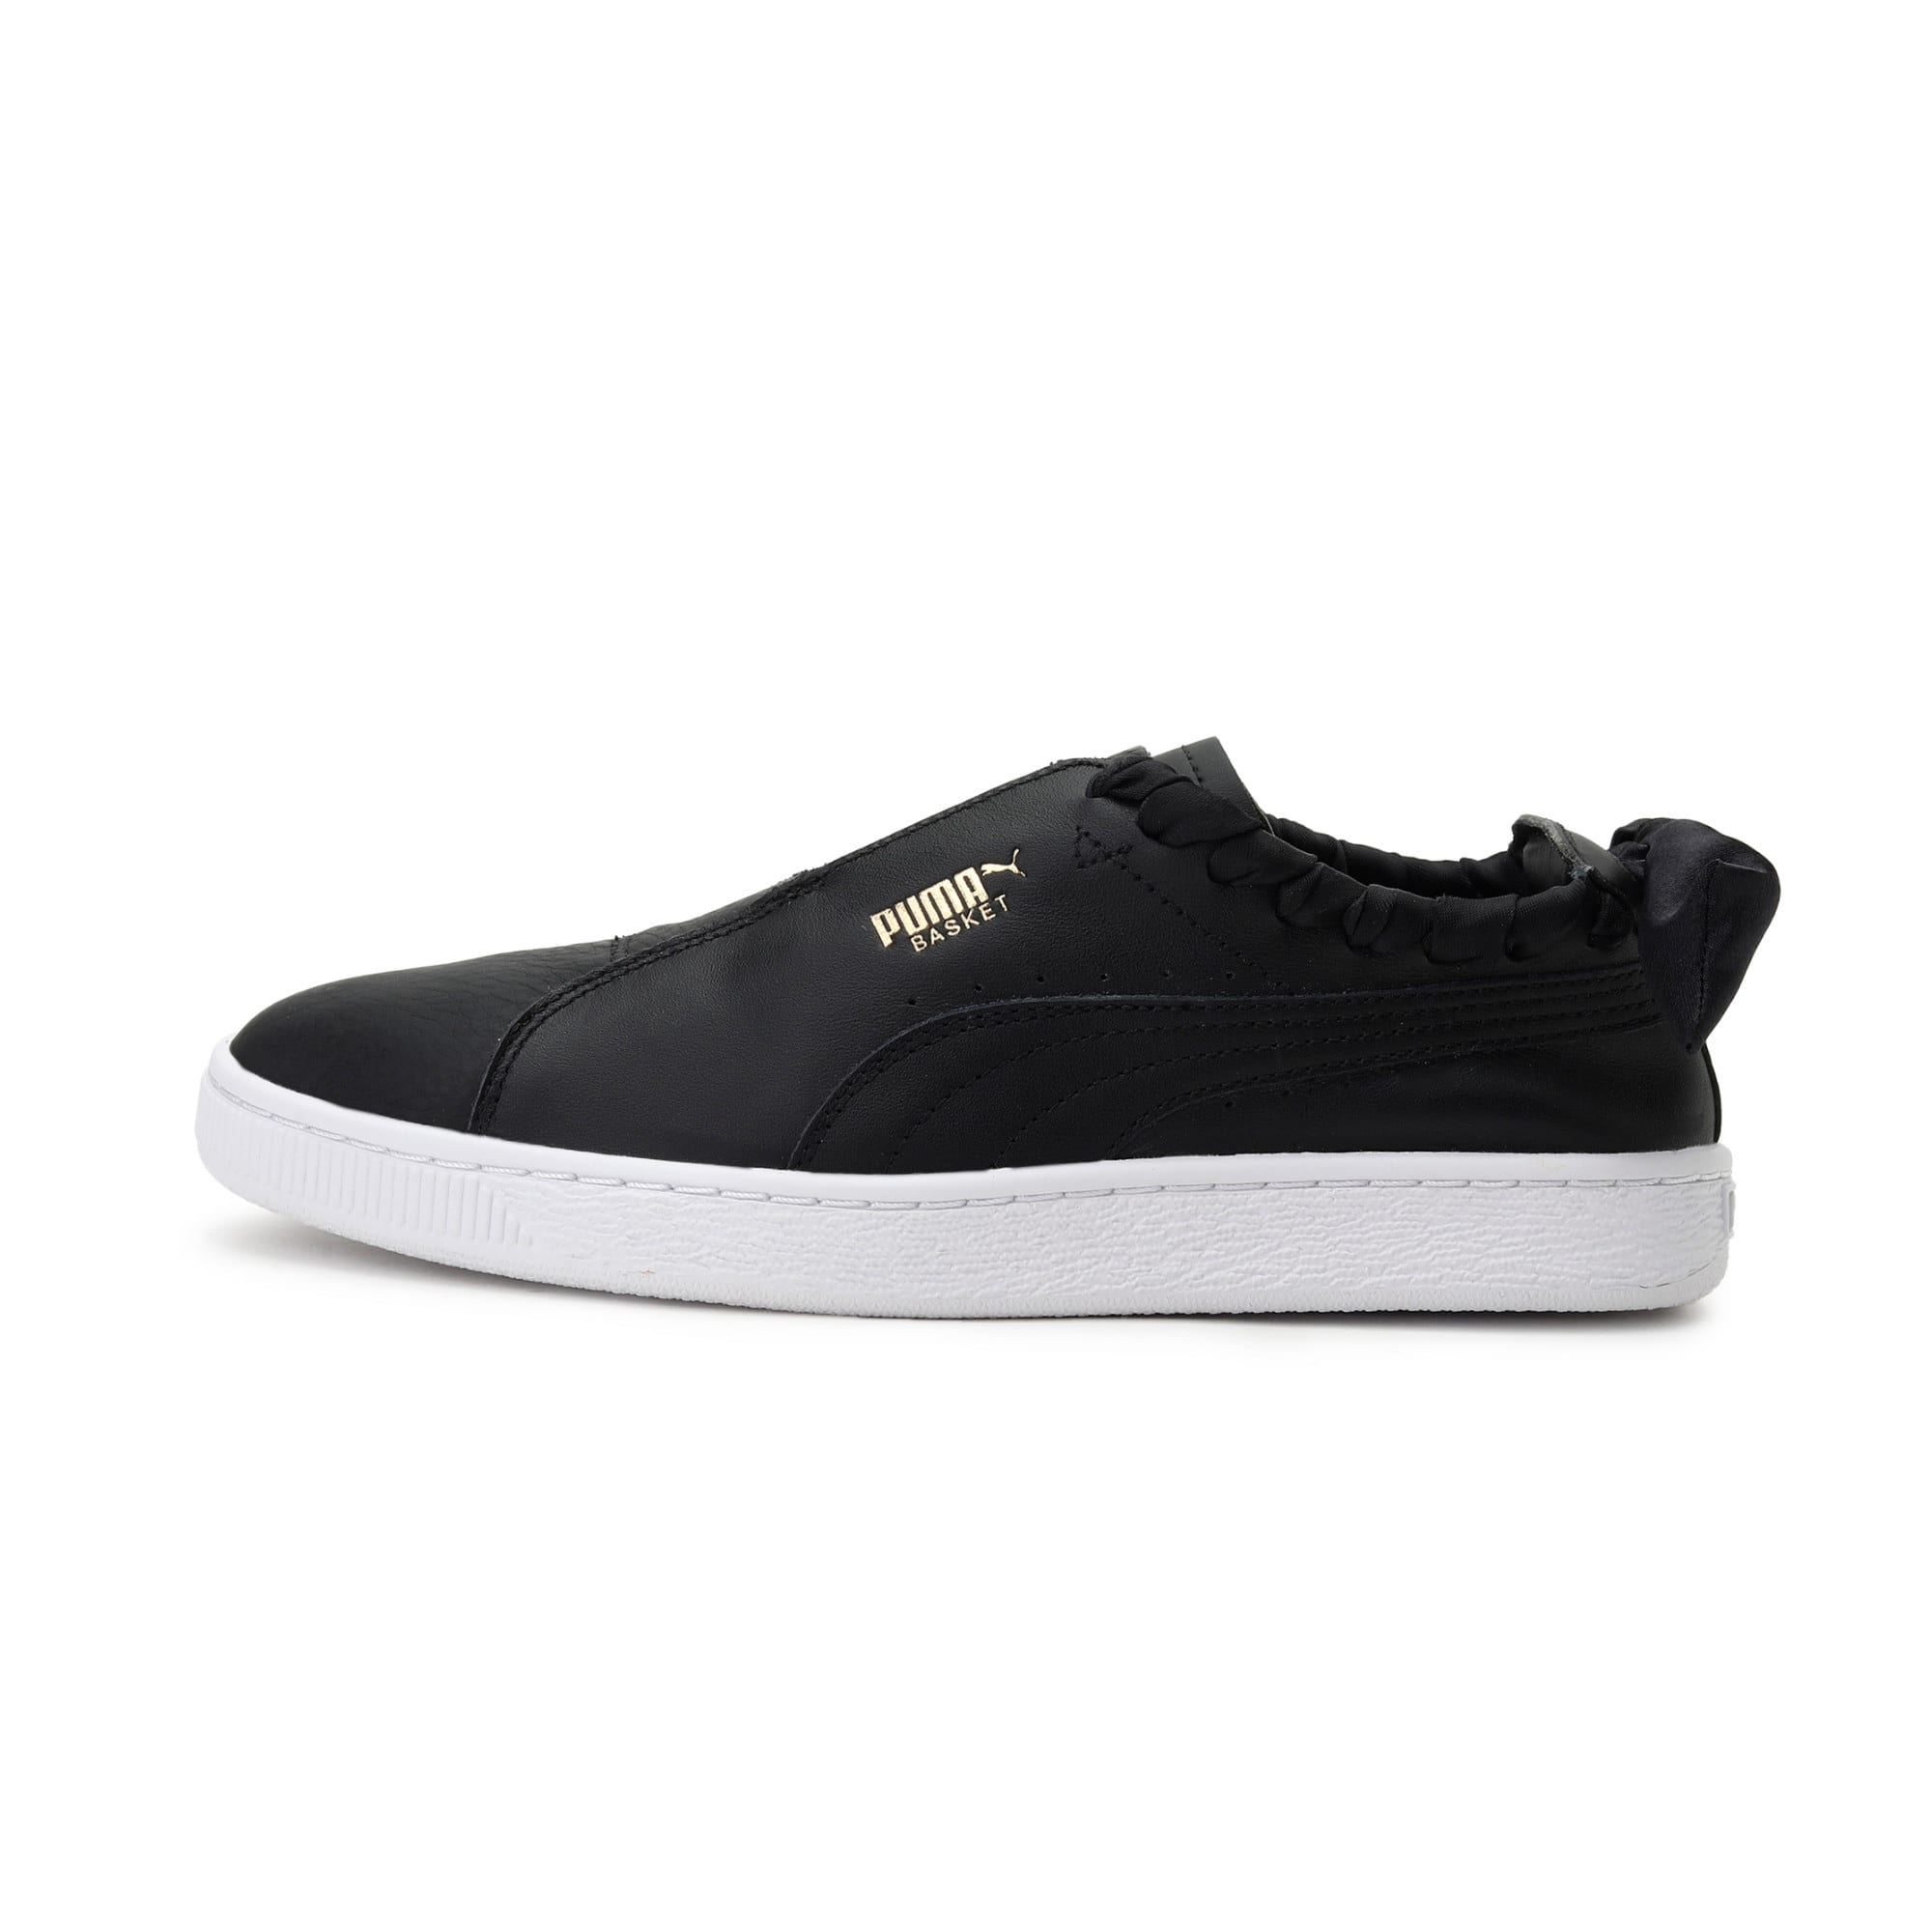 Thumbnail 1 of PUMA Basket Twist Women's Trainers, Puma Black-Puma Team Gold, medium-IND